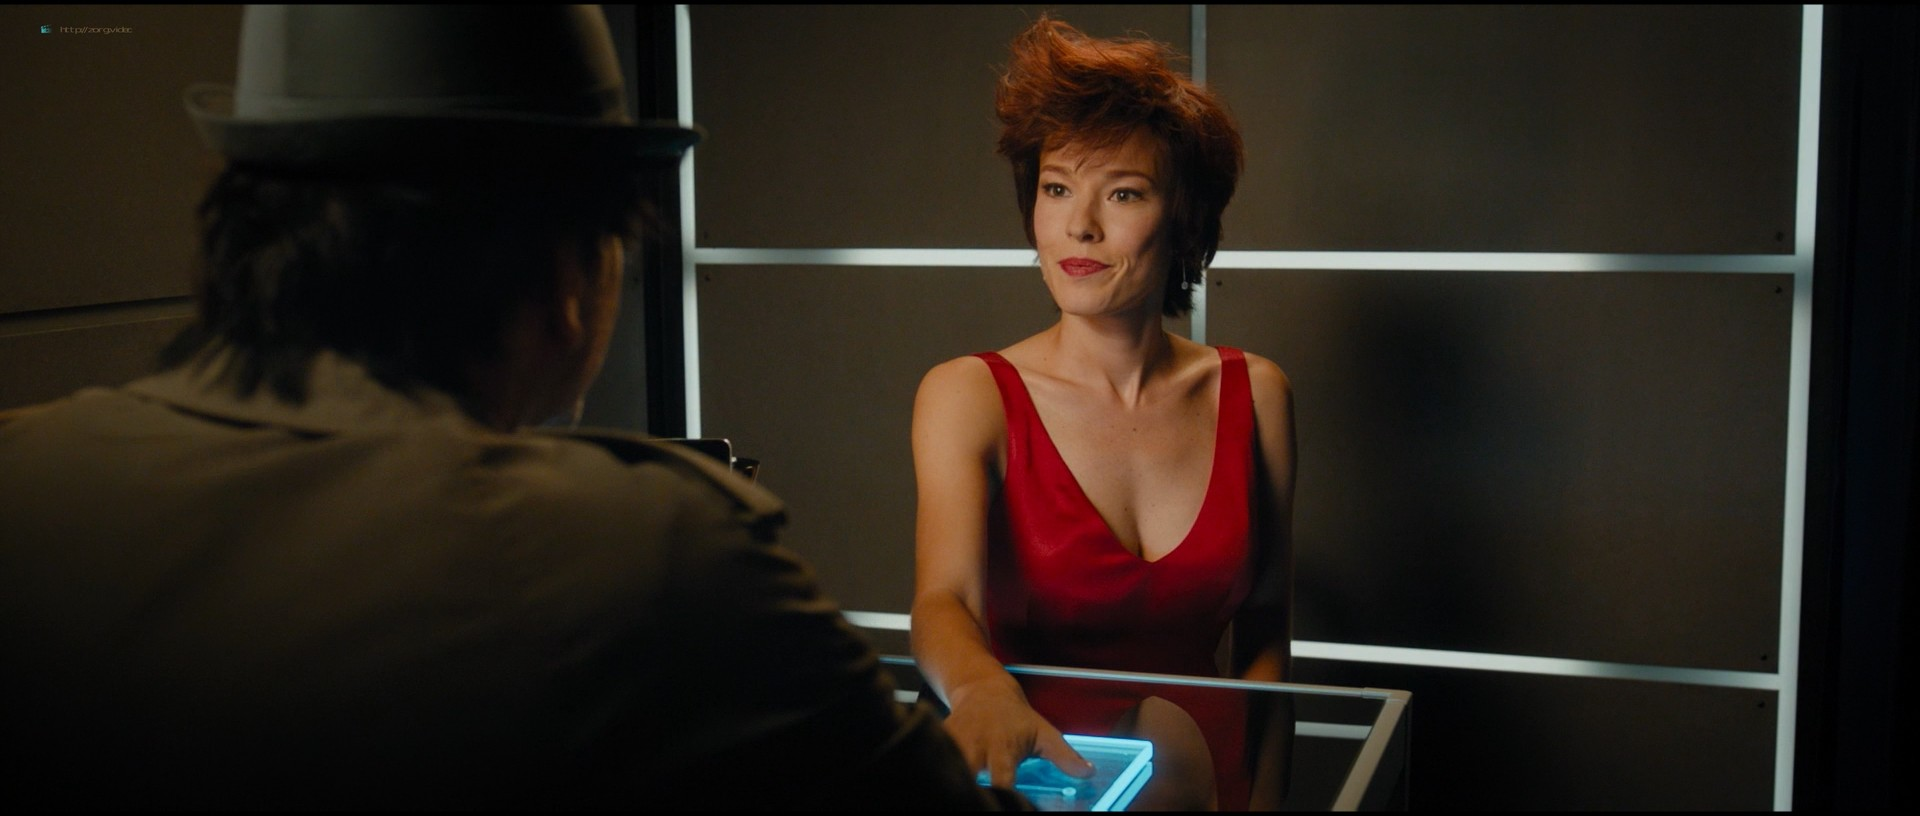 Pamela Anderson sexy Élodie Fontan and others hot - Nicky Larson et le parfum de Cupidon (2018) 1080p BluRay (8)